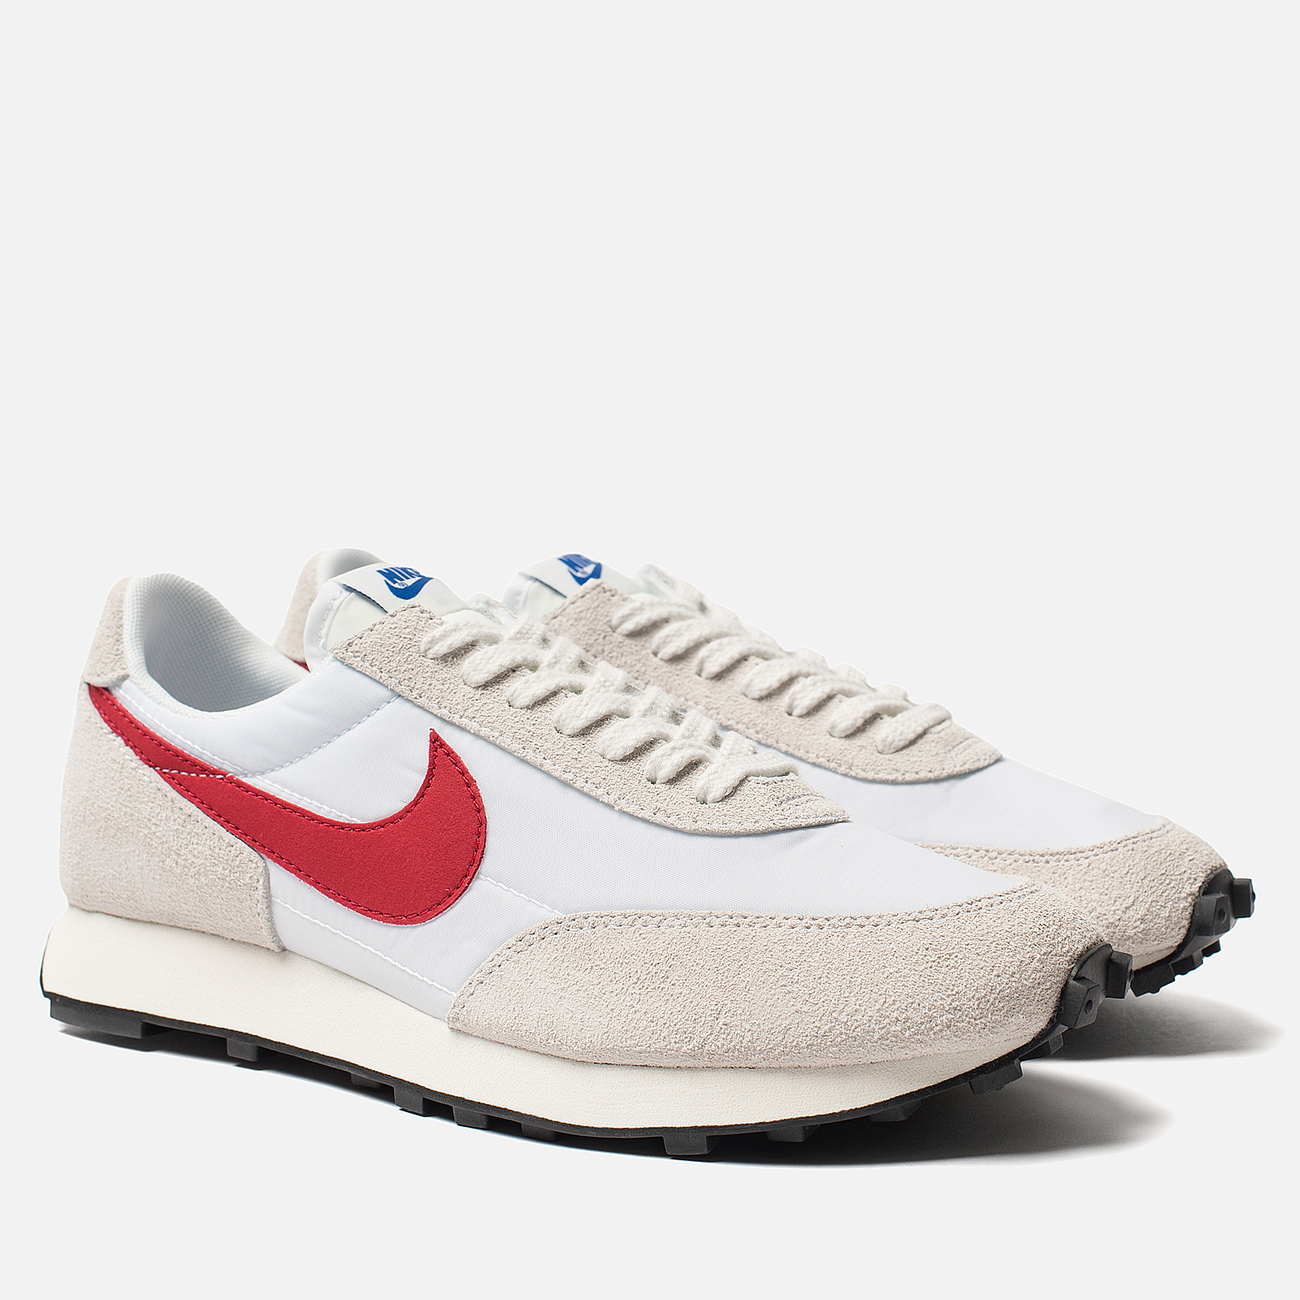 Кроссовки Nike Daybreak SP White/University/Summit White